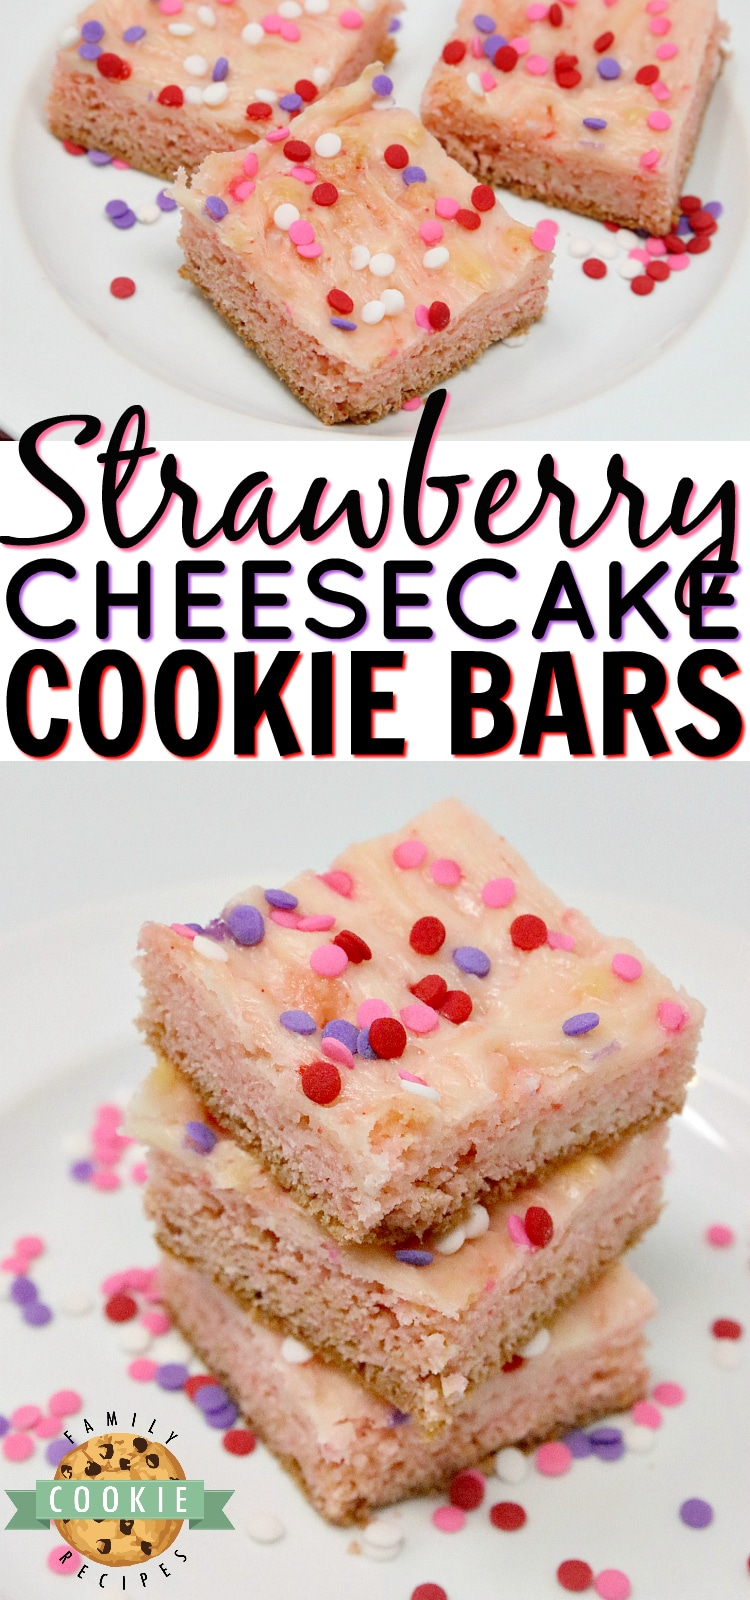 Strawberry Cheesecake Cookie Bars are made with a strawberry cake mix with a simple sweet cream cheese filling swirled in. Only 6 ingredients for these simple cookie bars that are soft, sweet and taste like strawberry cheesecake in cookie form! via @buttergirls